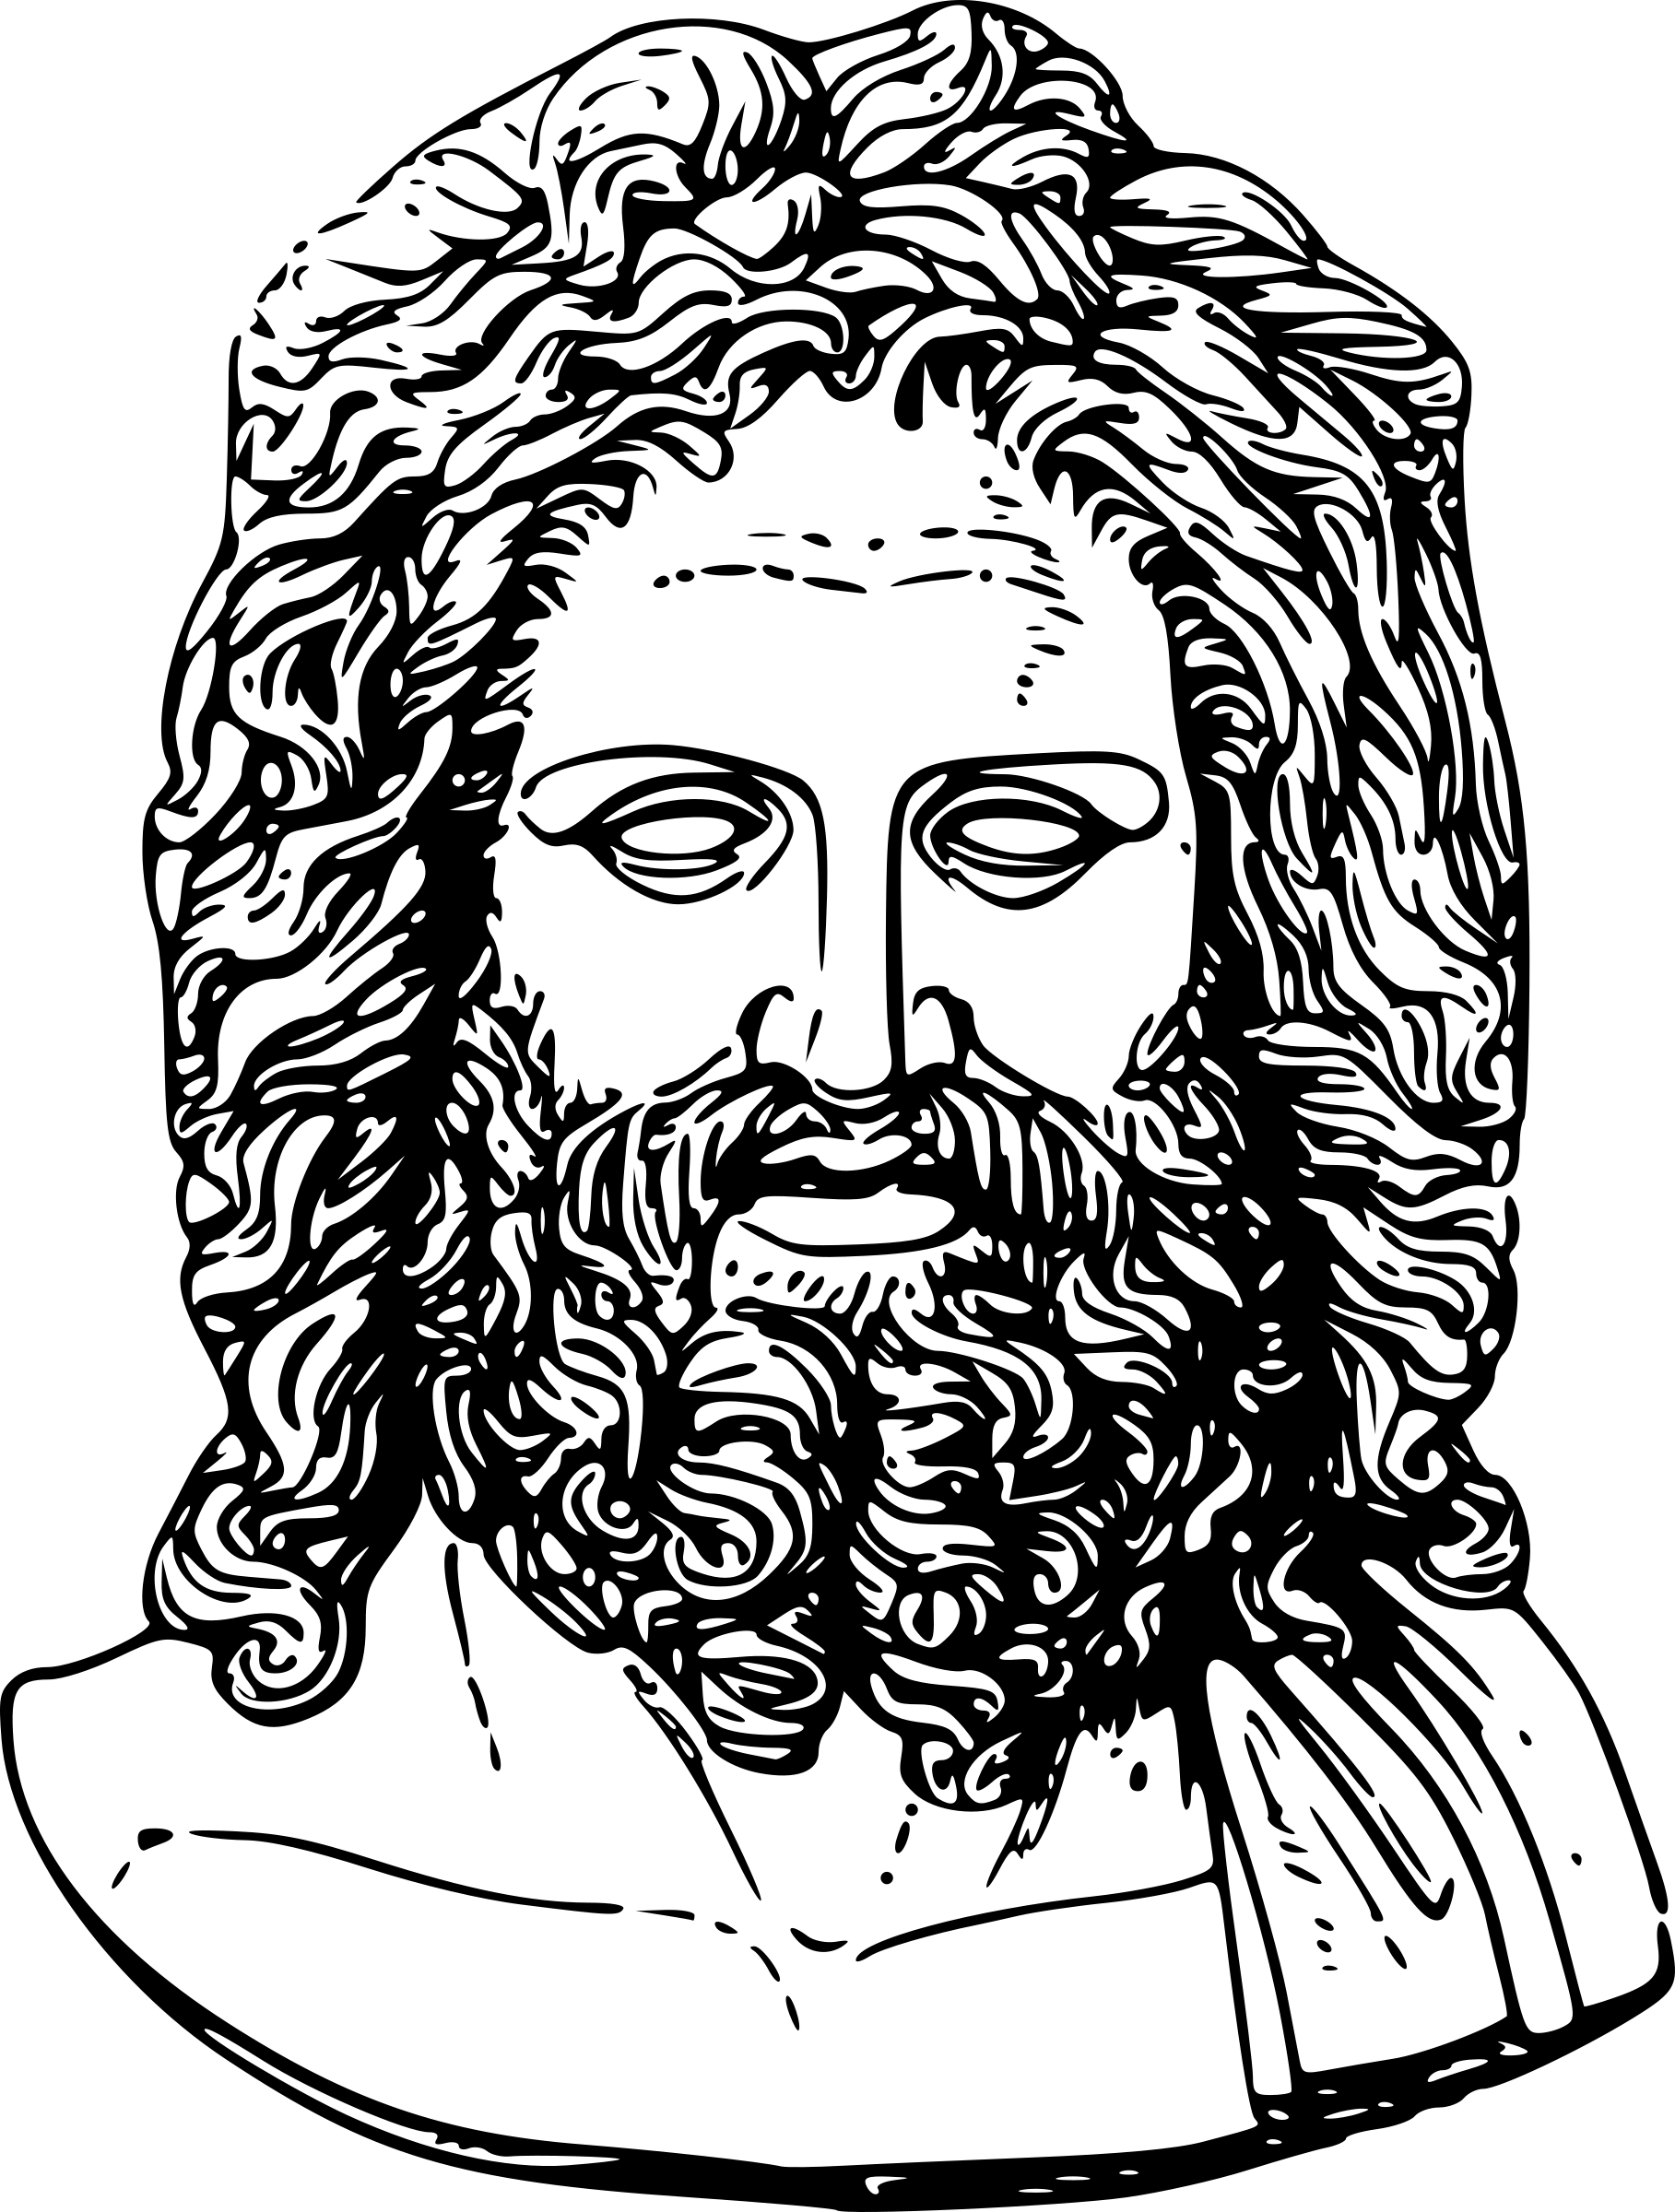 Cartoon Drawing Of The Odysseus